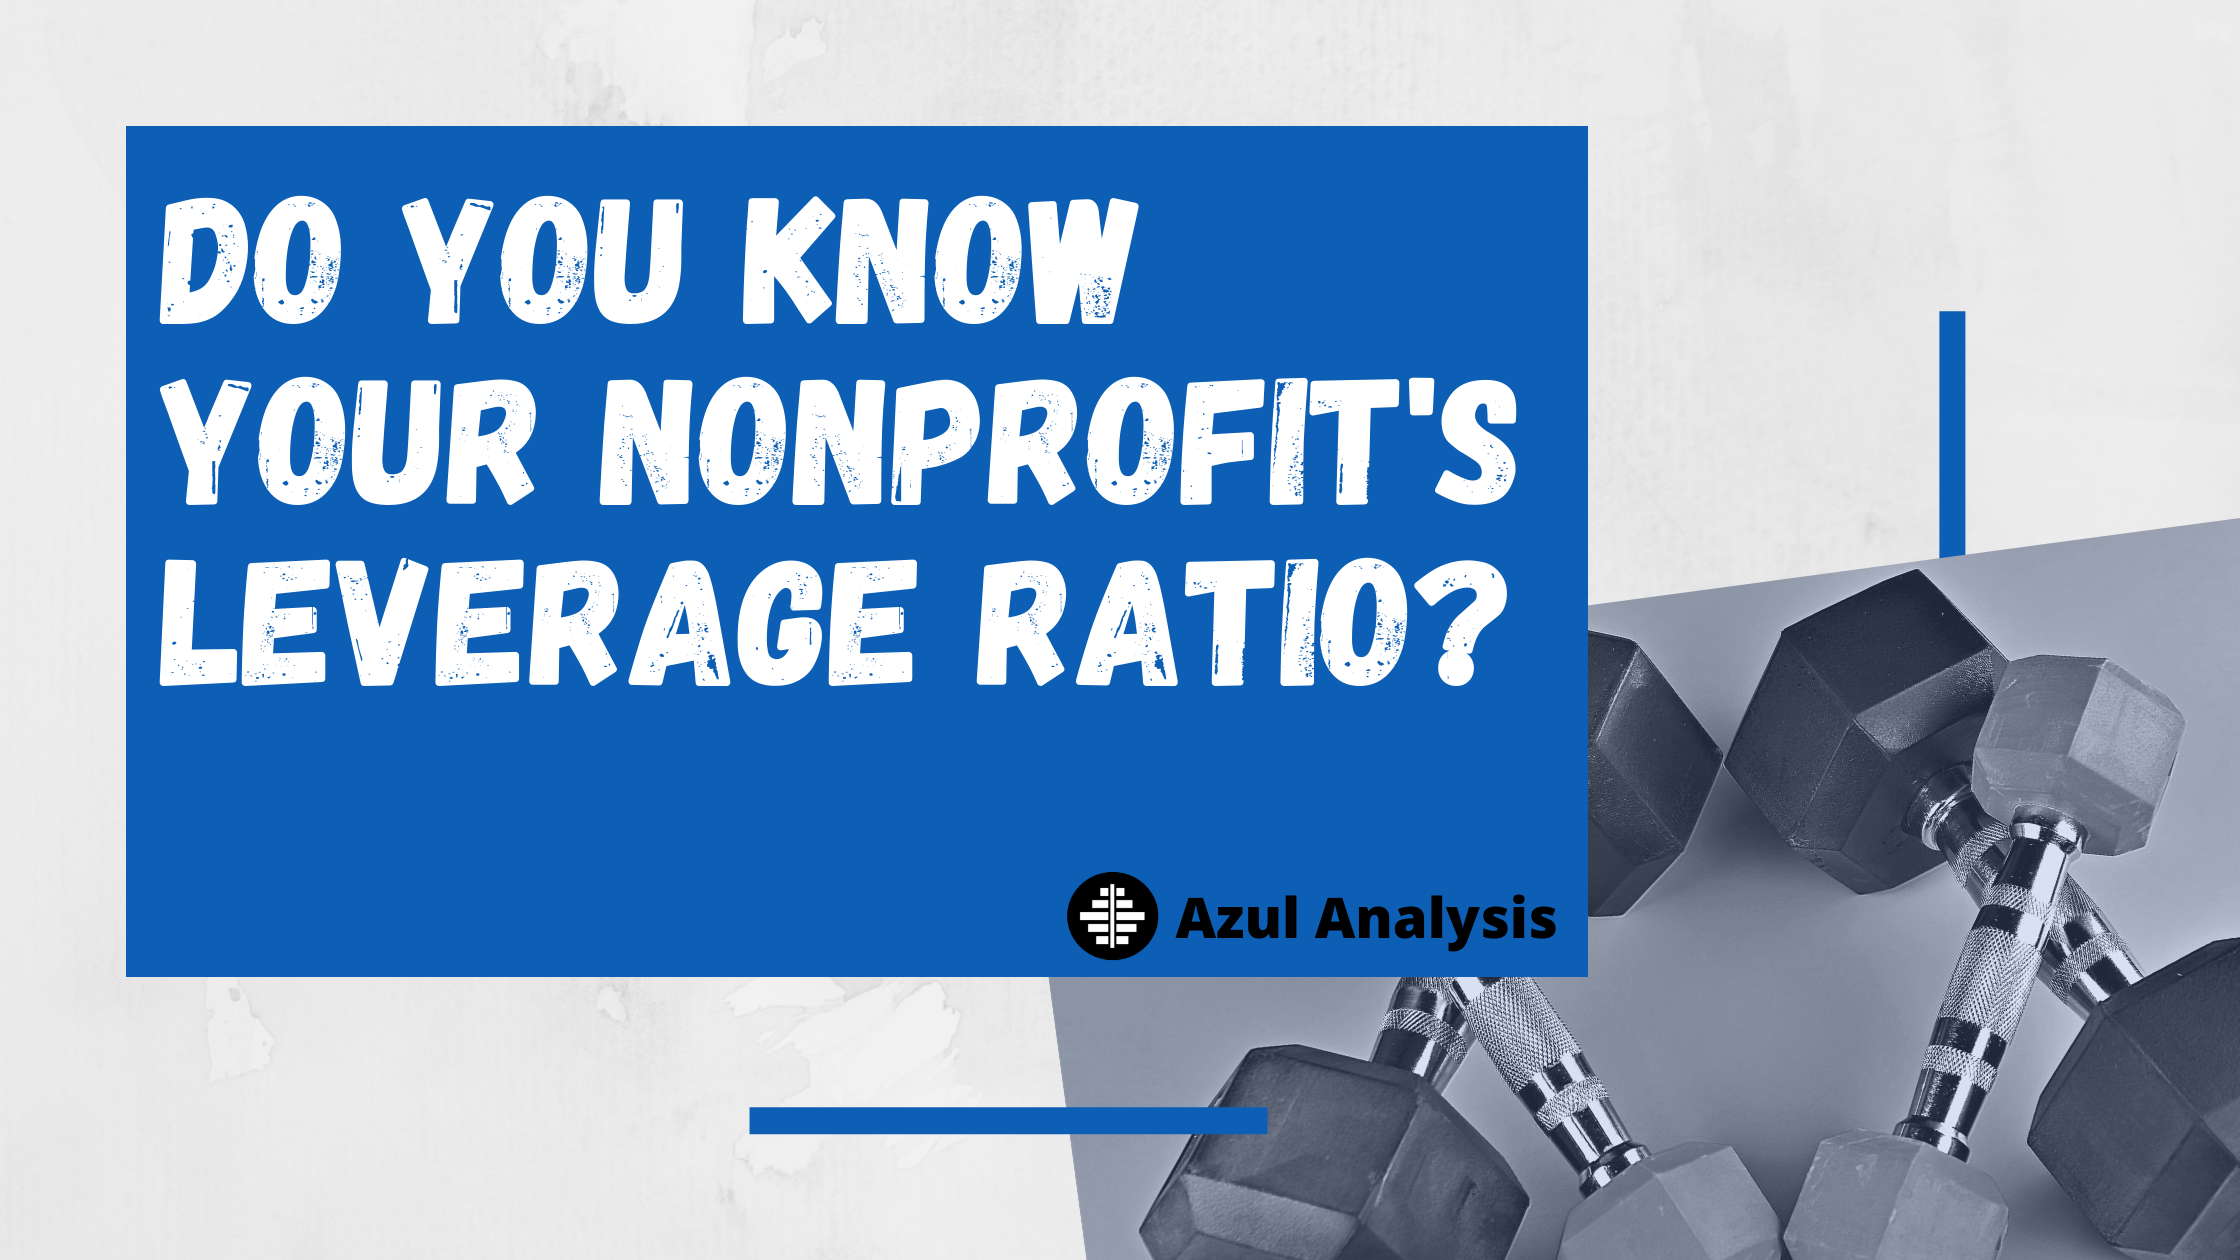 Do you know your nonprofit's leverage ratio?